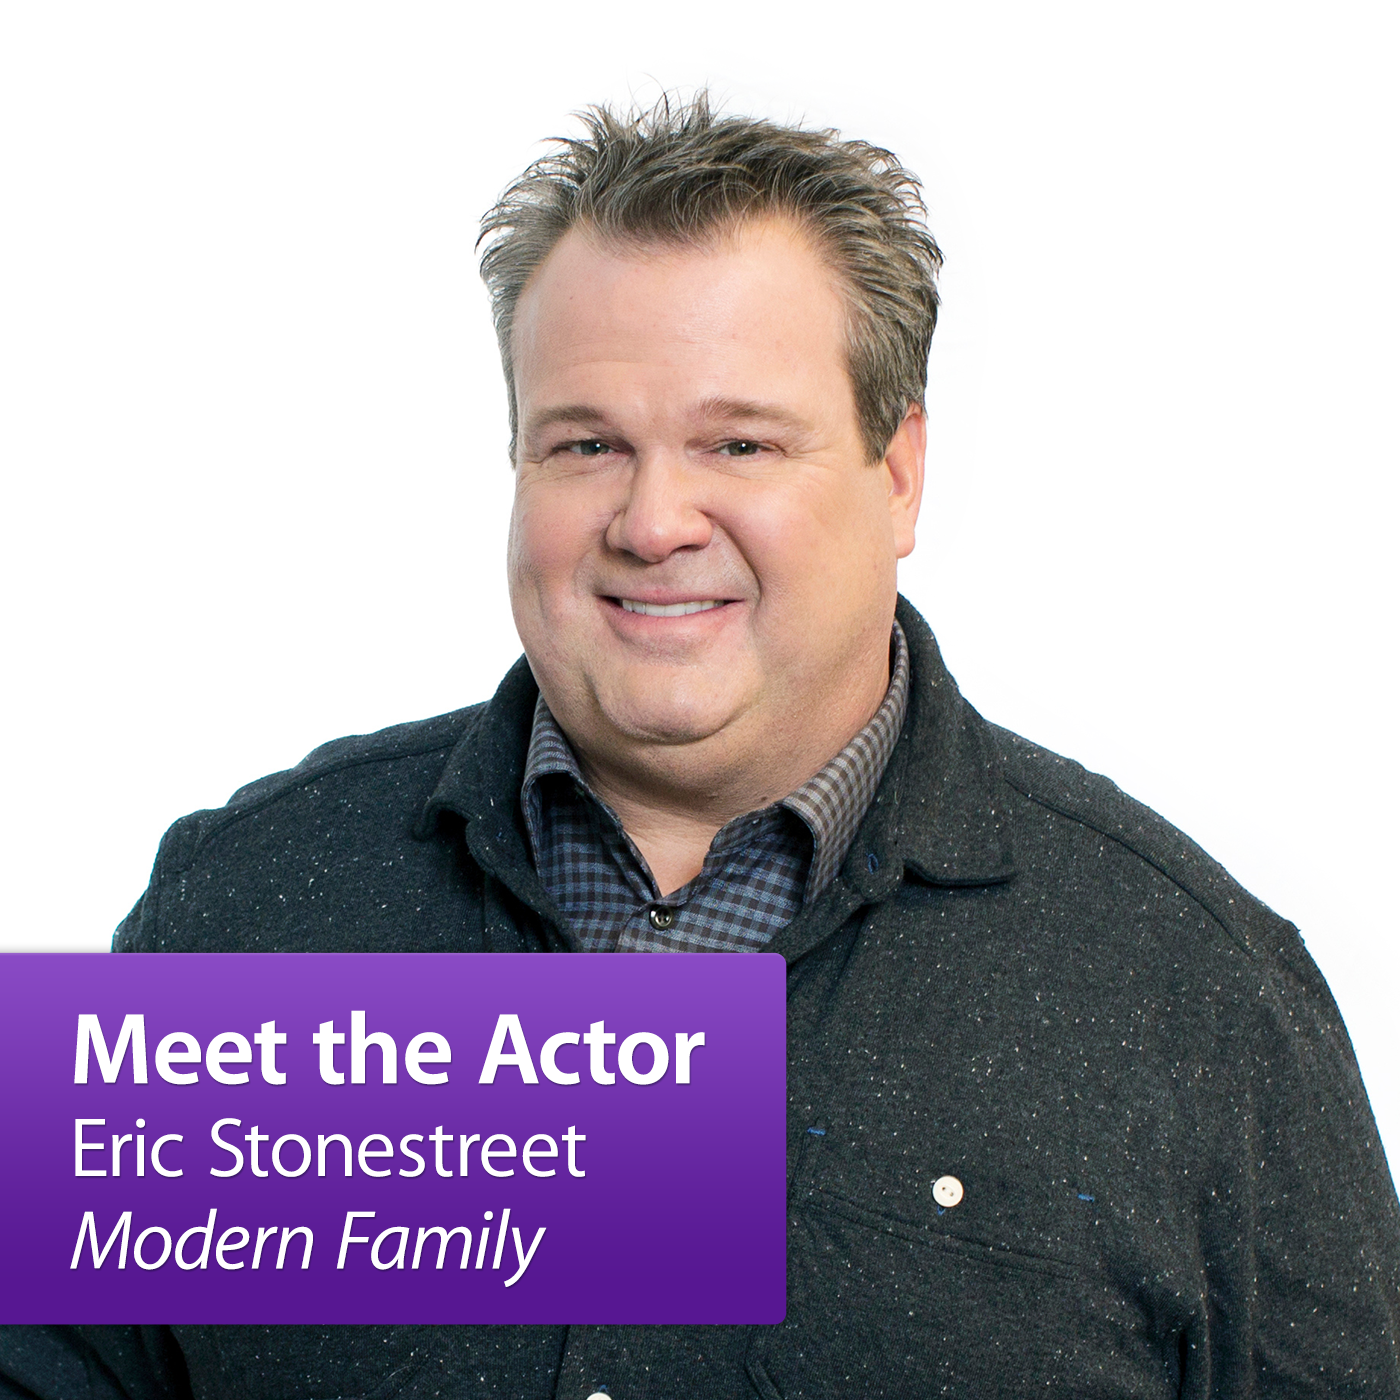 Eric Stonestreet: Meet the Actor